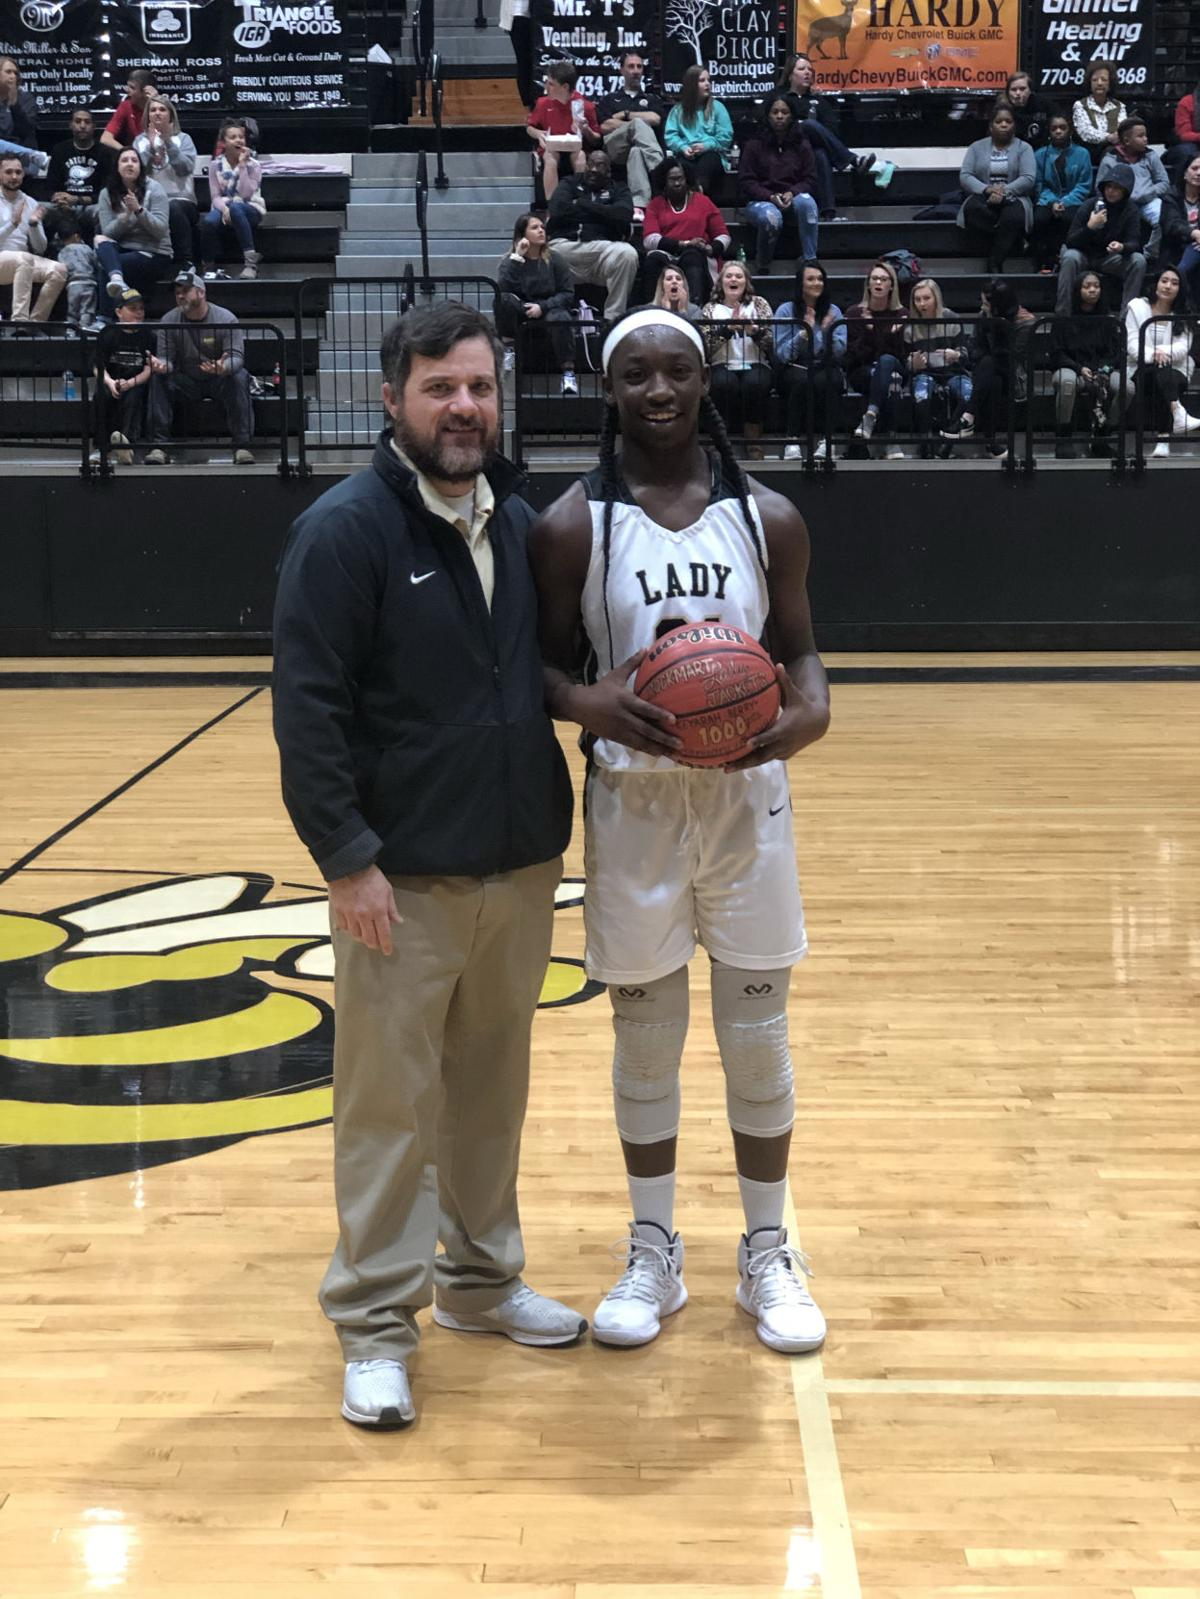 Berry reaches 1,000 point mark as Rockmart Lady Jacket